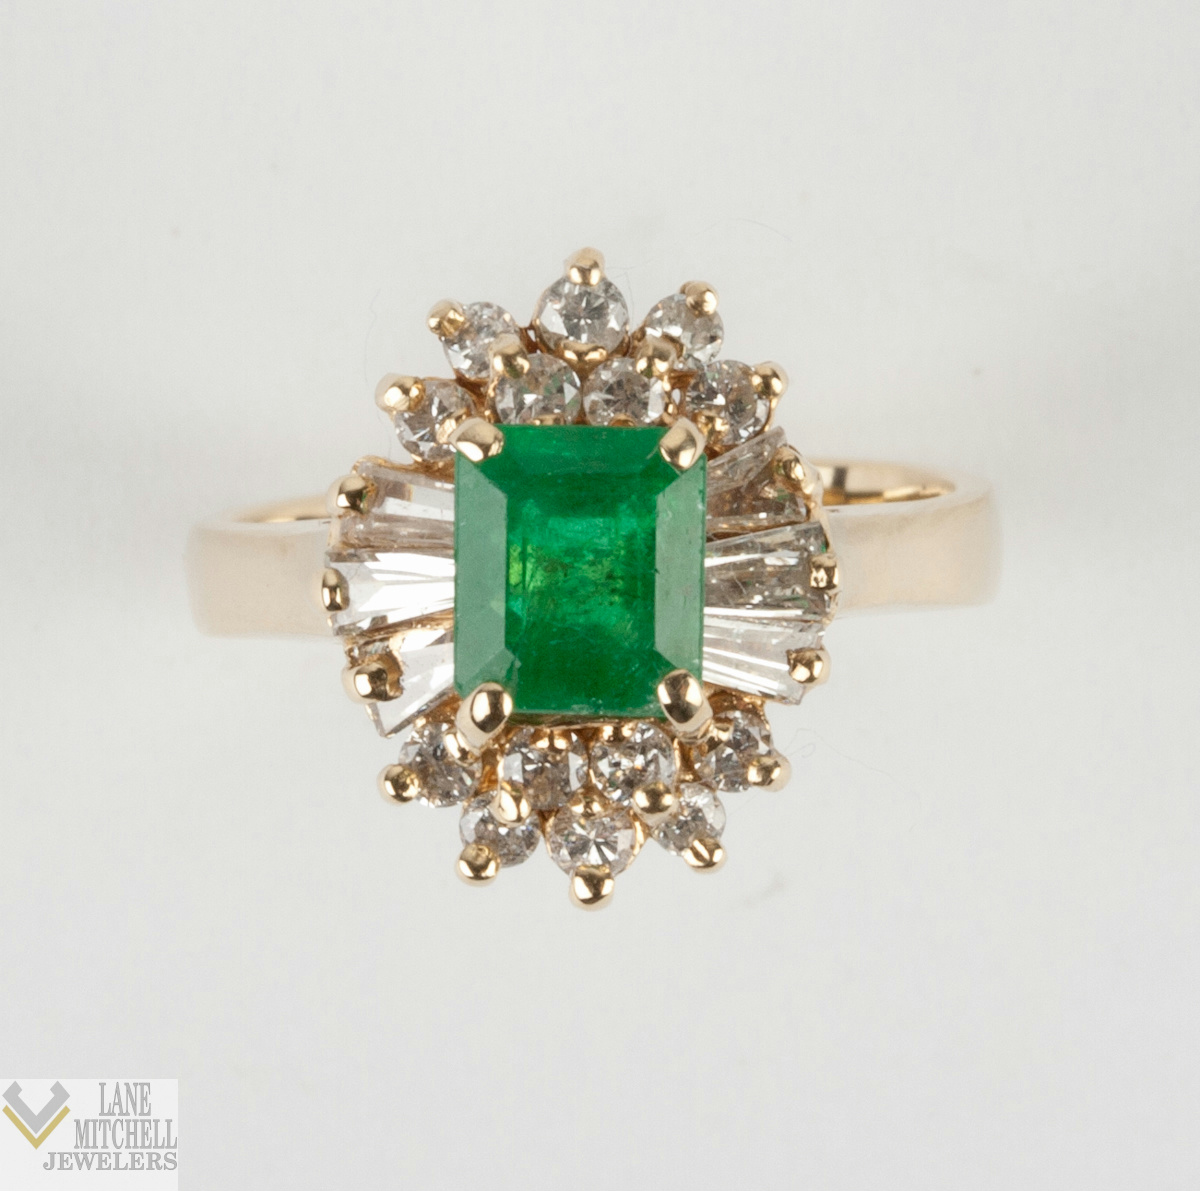 Ladies 14k Yellow Gold Emerald Cut Emerald Solitaire Ring